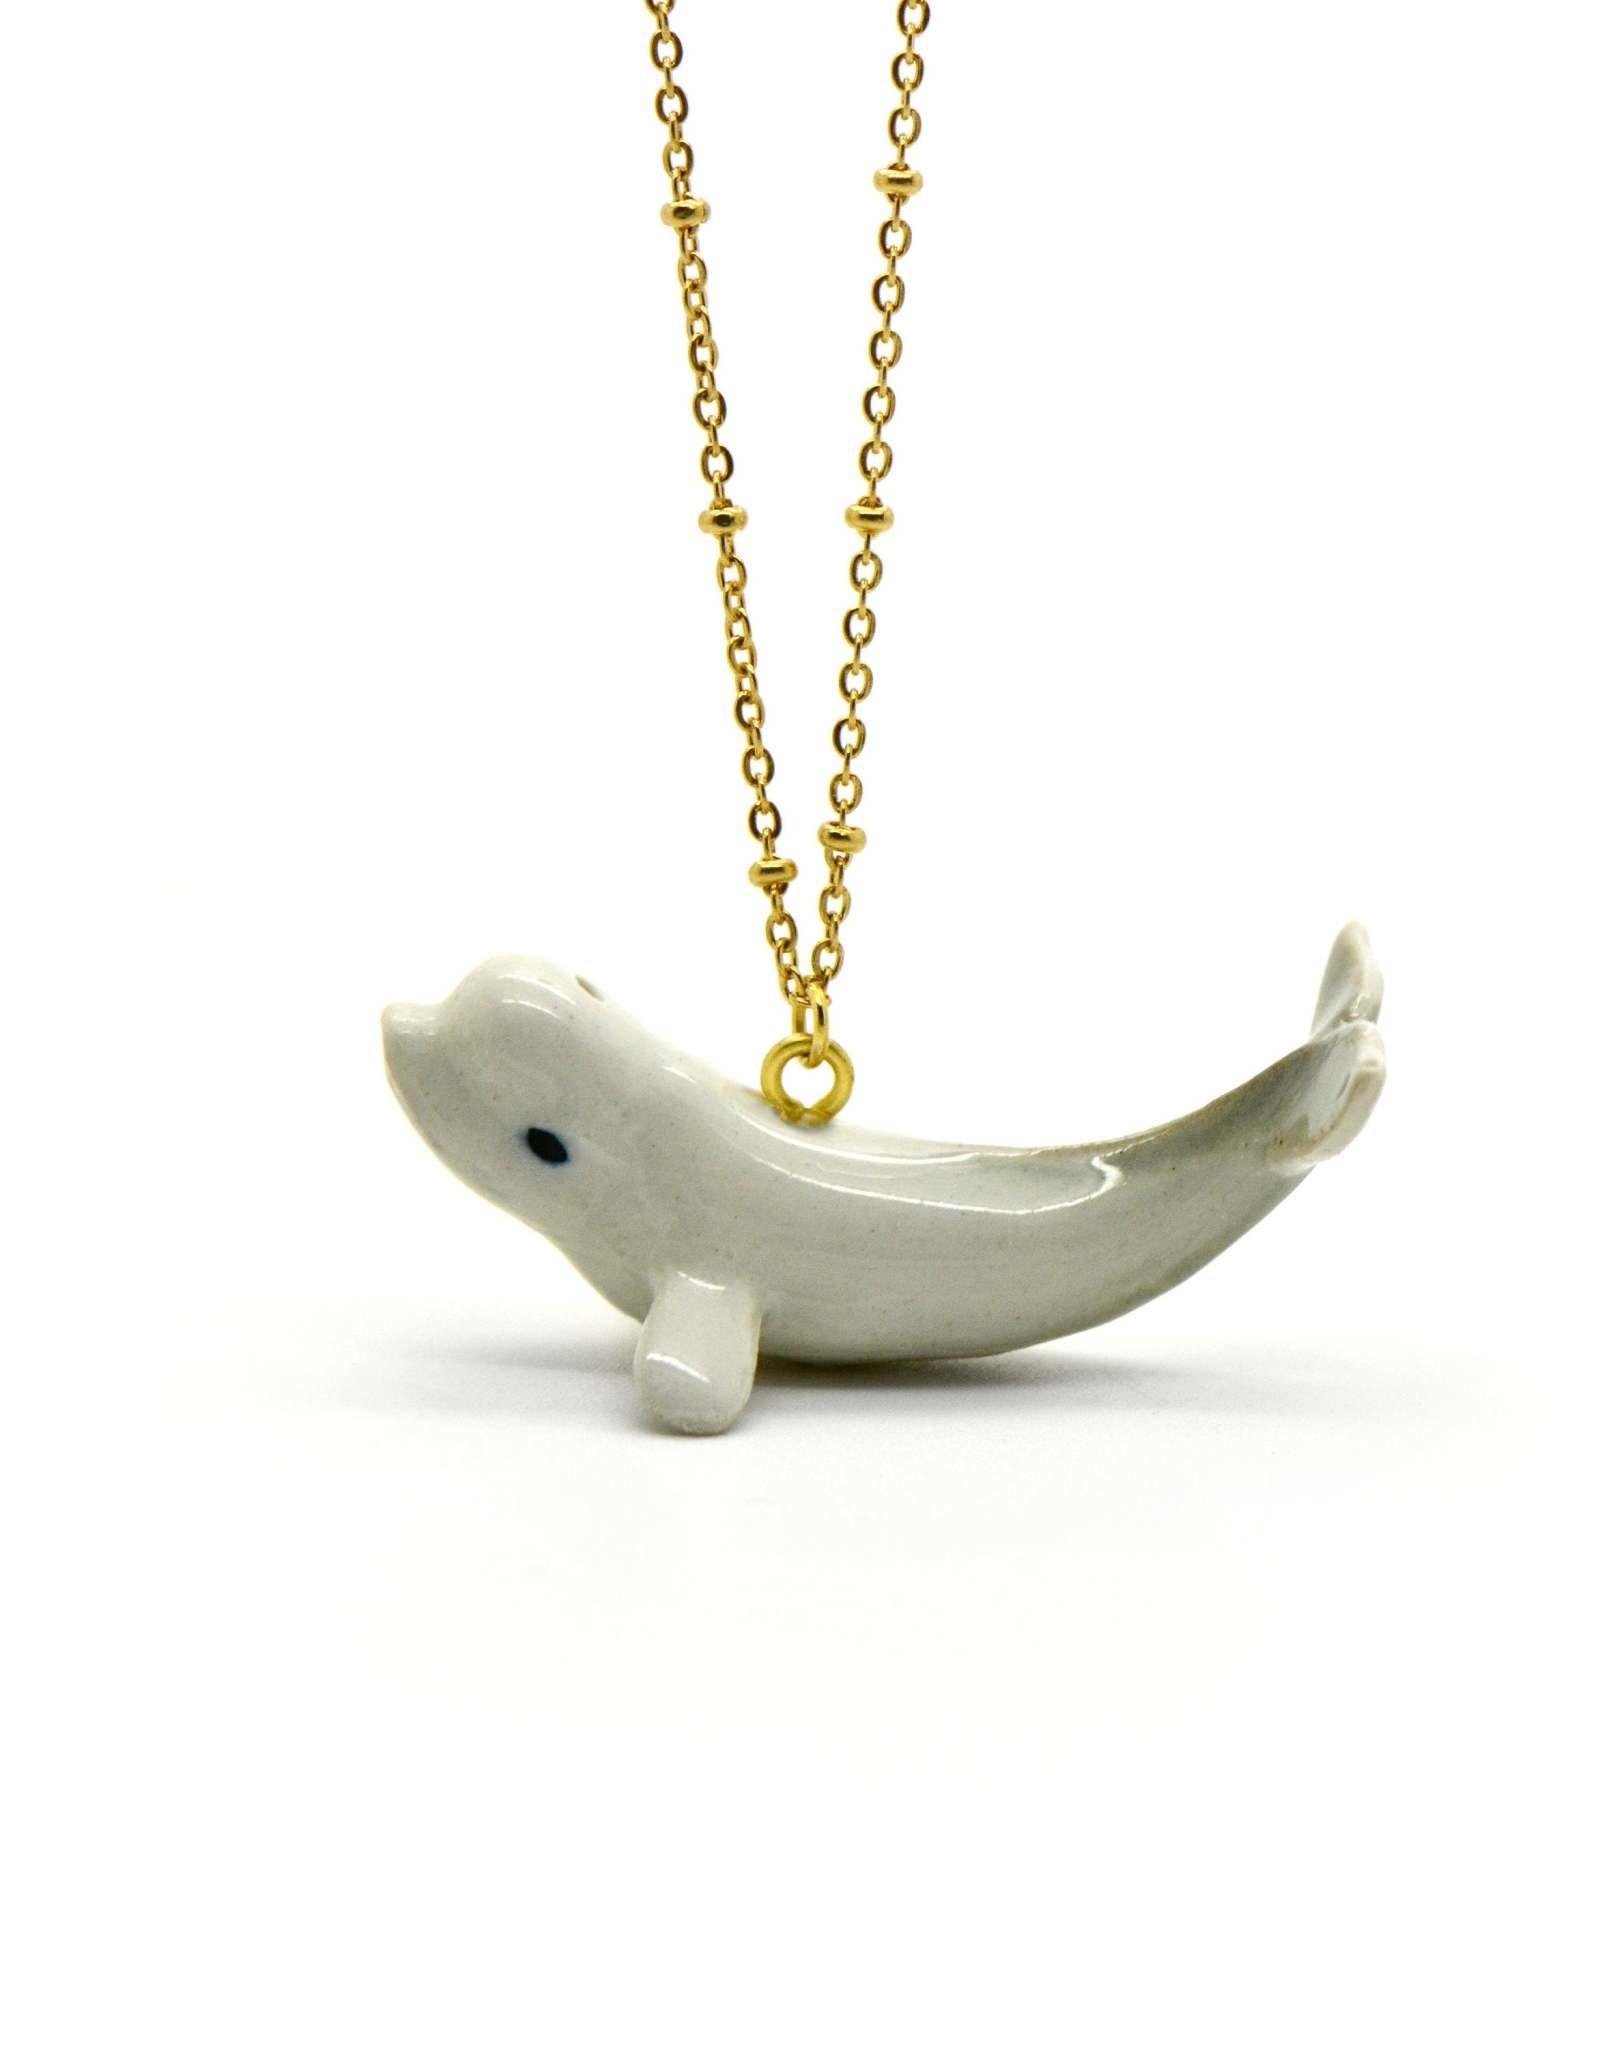 Camp Hollow Handpainted Porcelain Beluga Whale Necklace